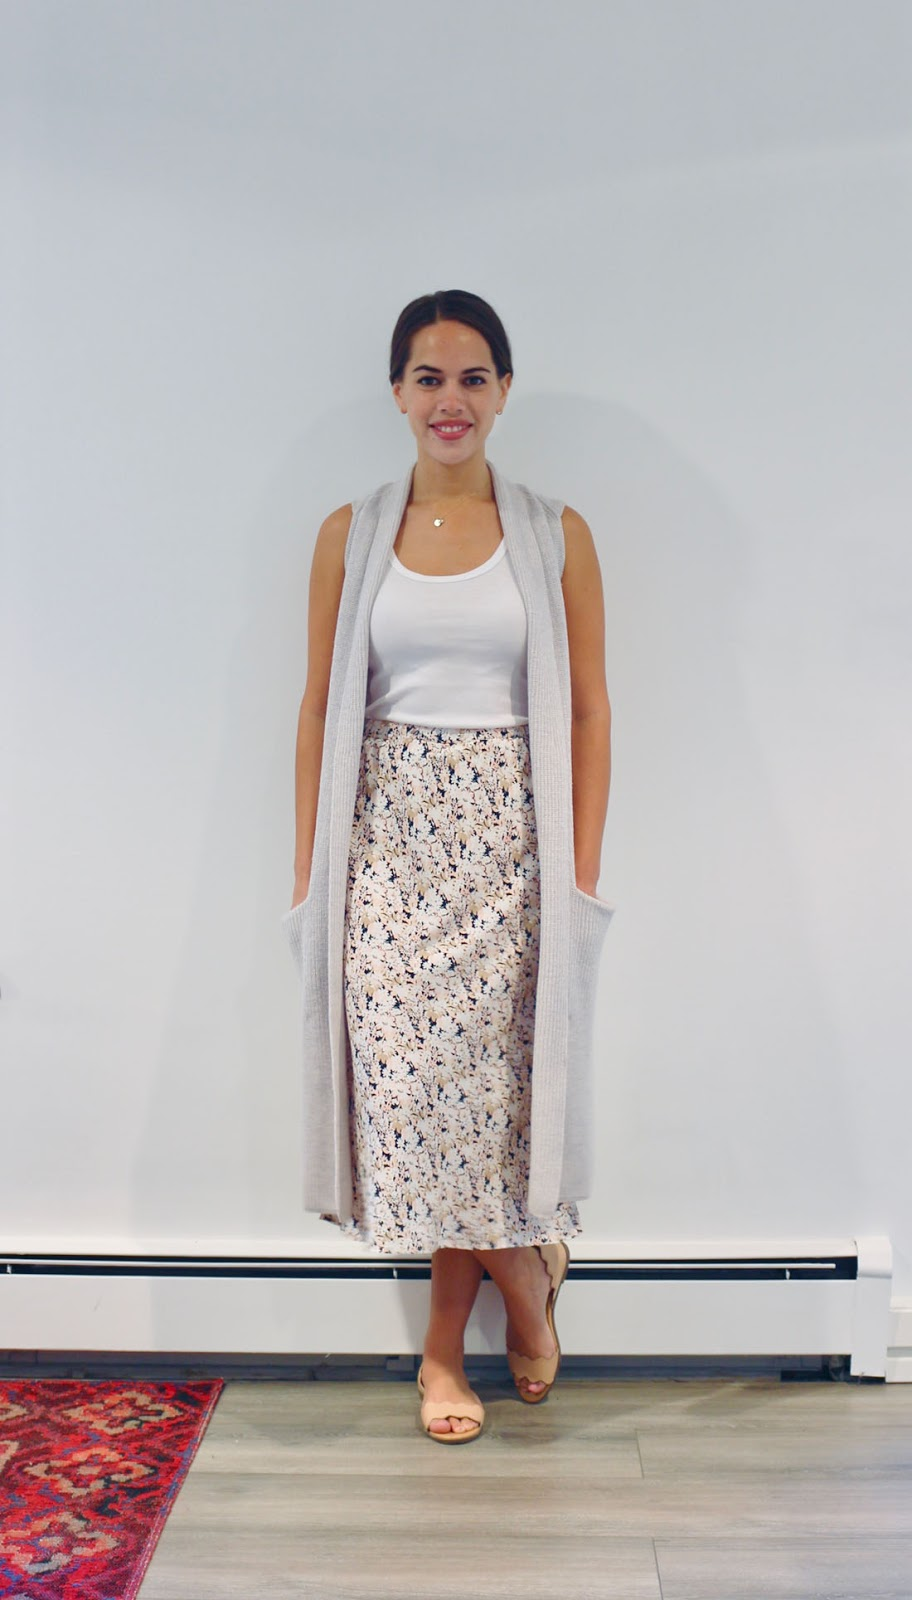 Jules in Flats -  Floral Print Midi Skirt with Tank & Sweater Vest (Business Casual Summer Workwear on a Budget)